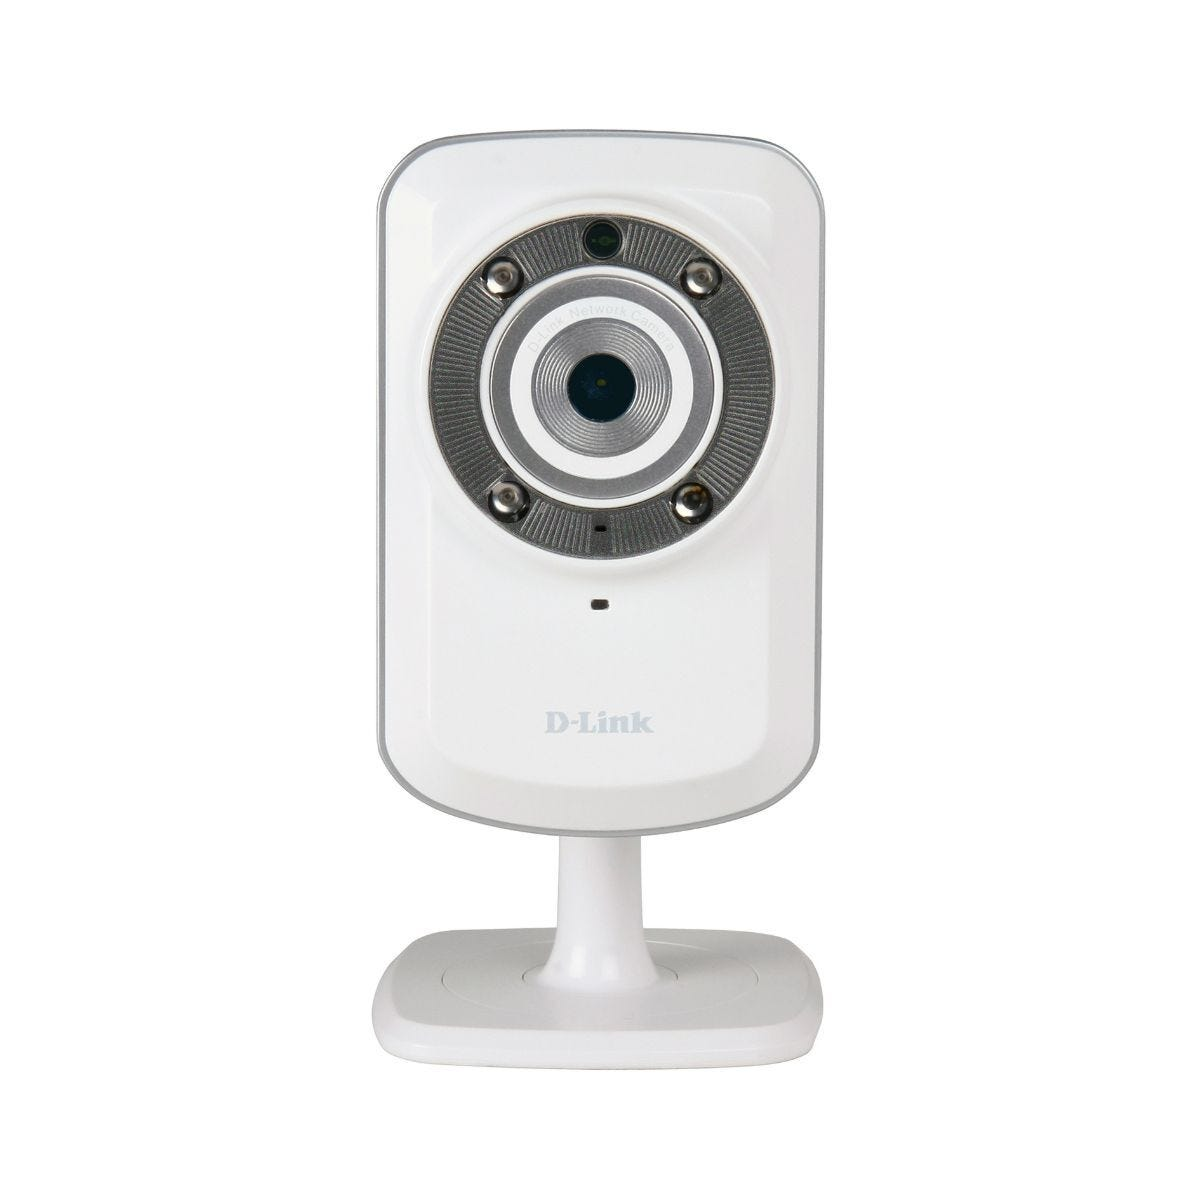 D-Link Wireless Night and Day Home Network Camera